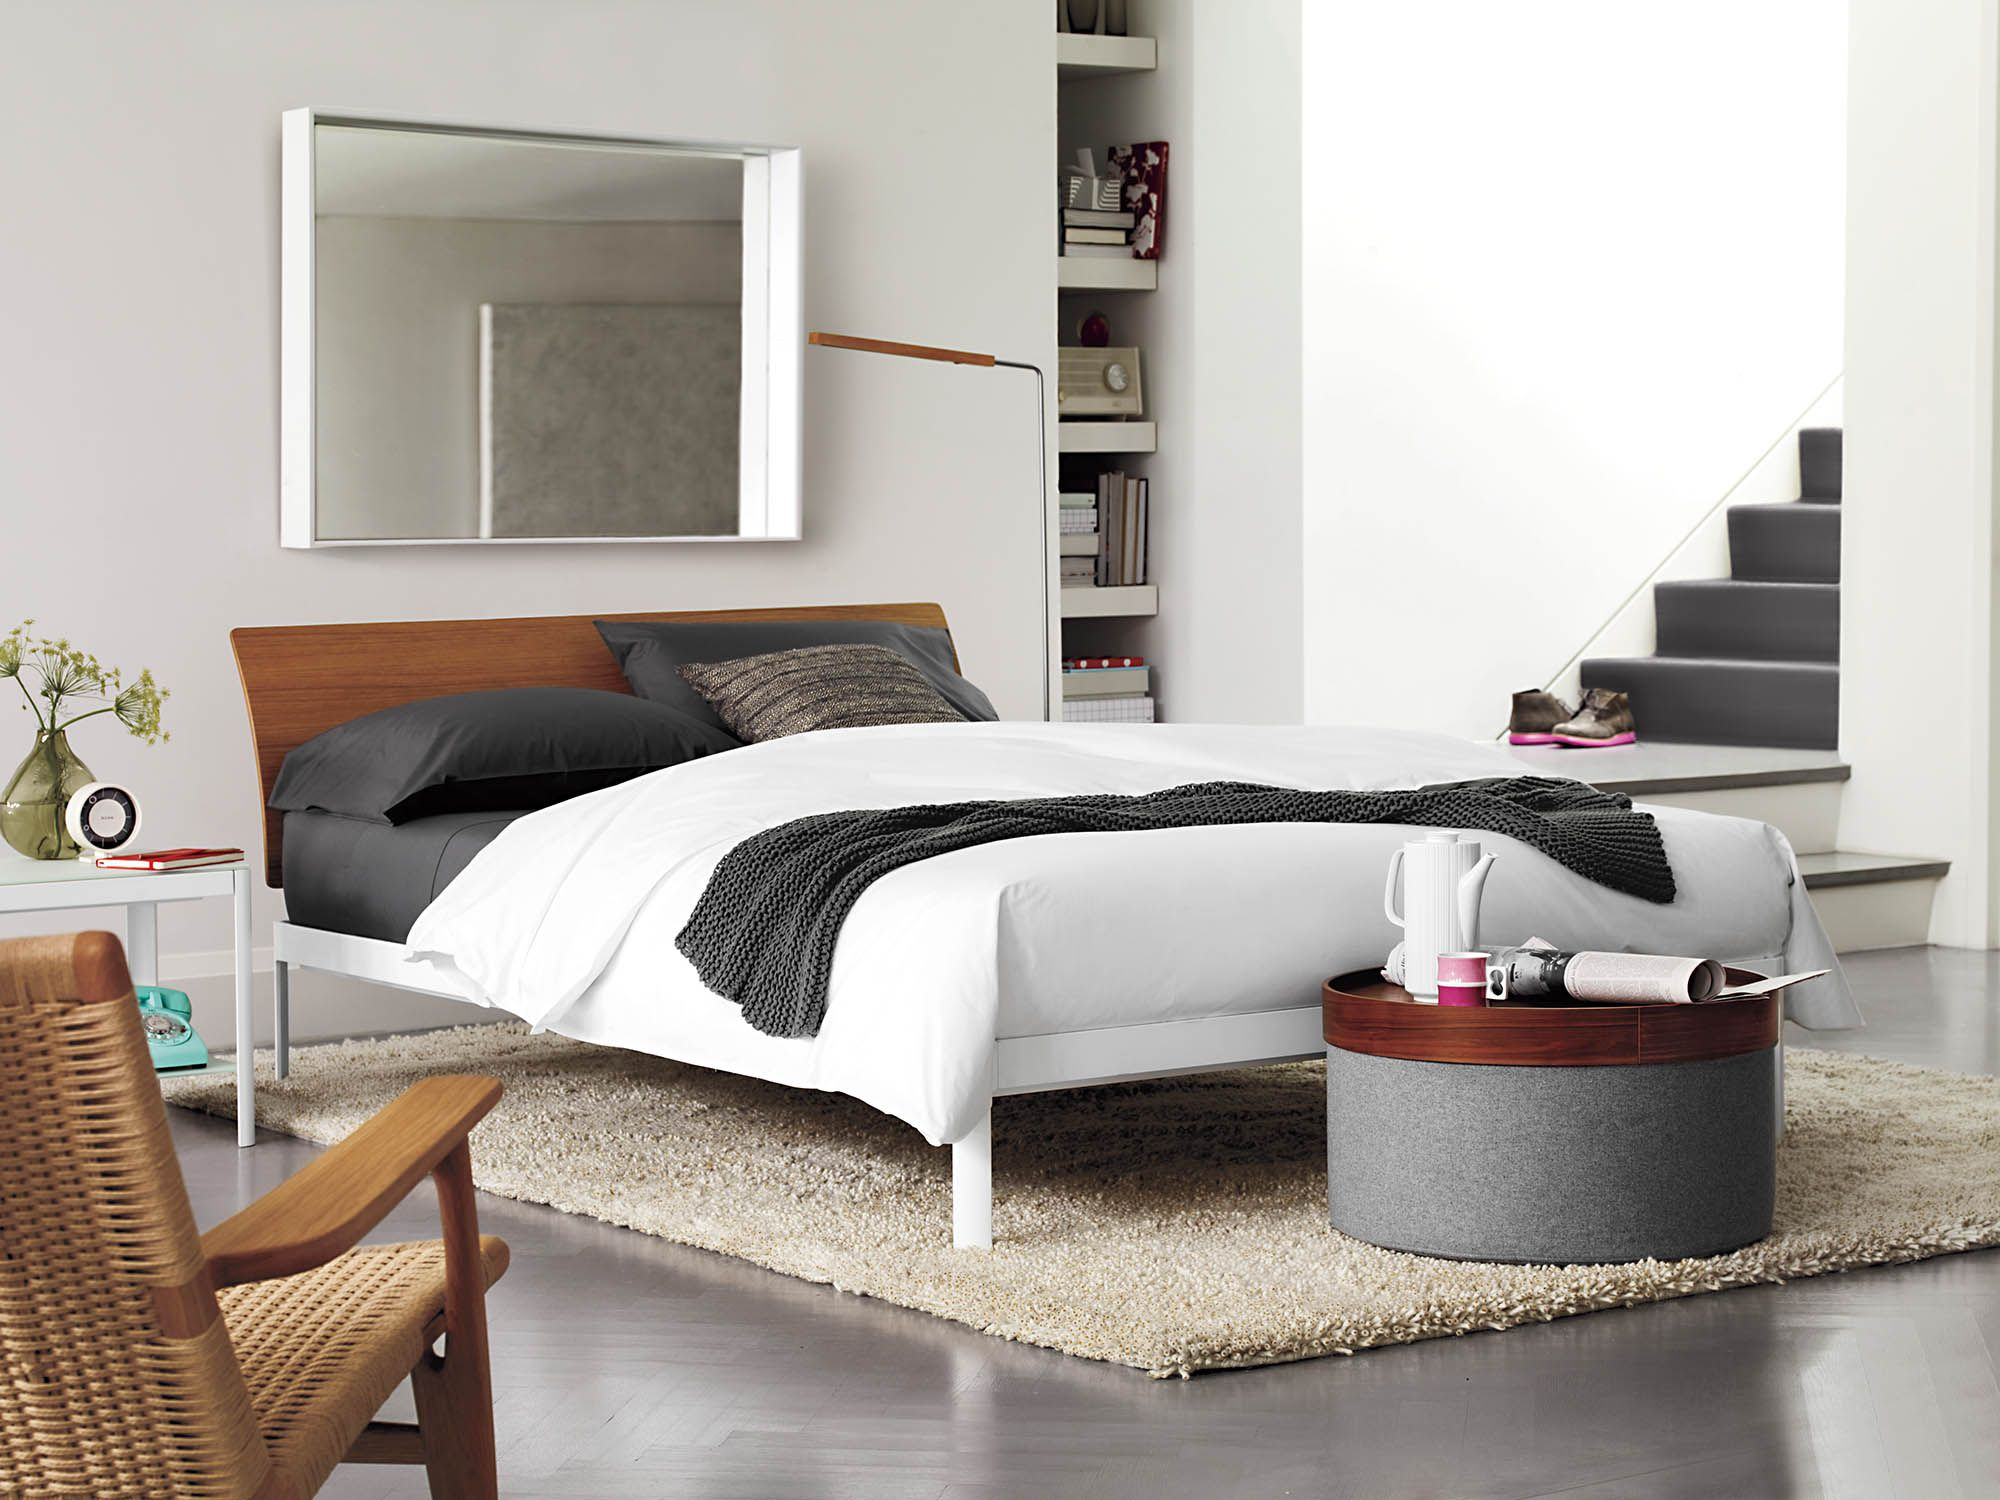 Min Bed With Wood Headboard Side Tables Bedroom Bed Design